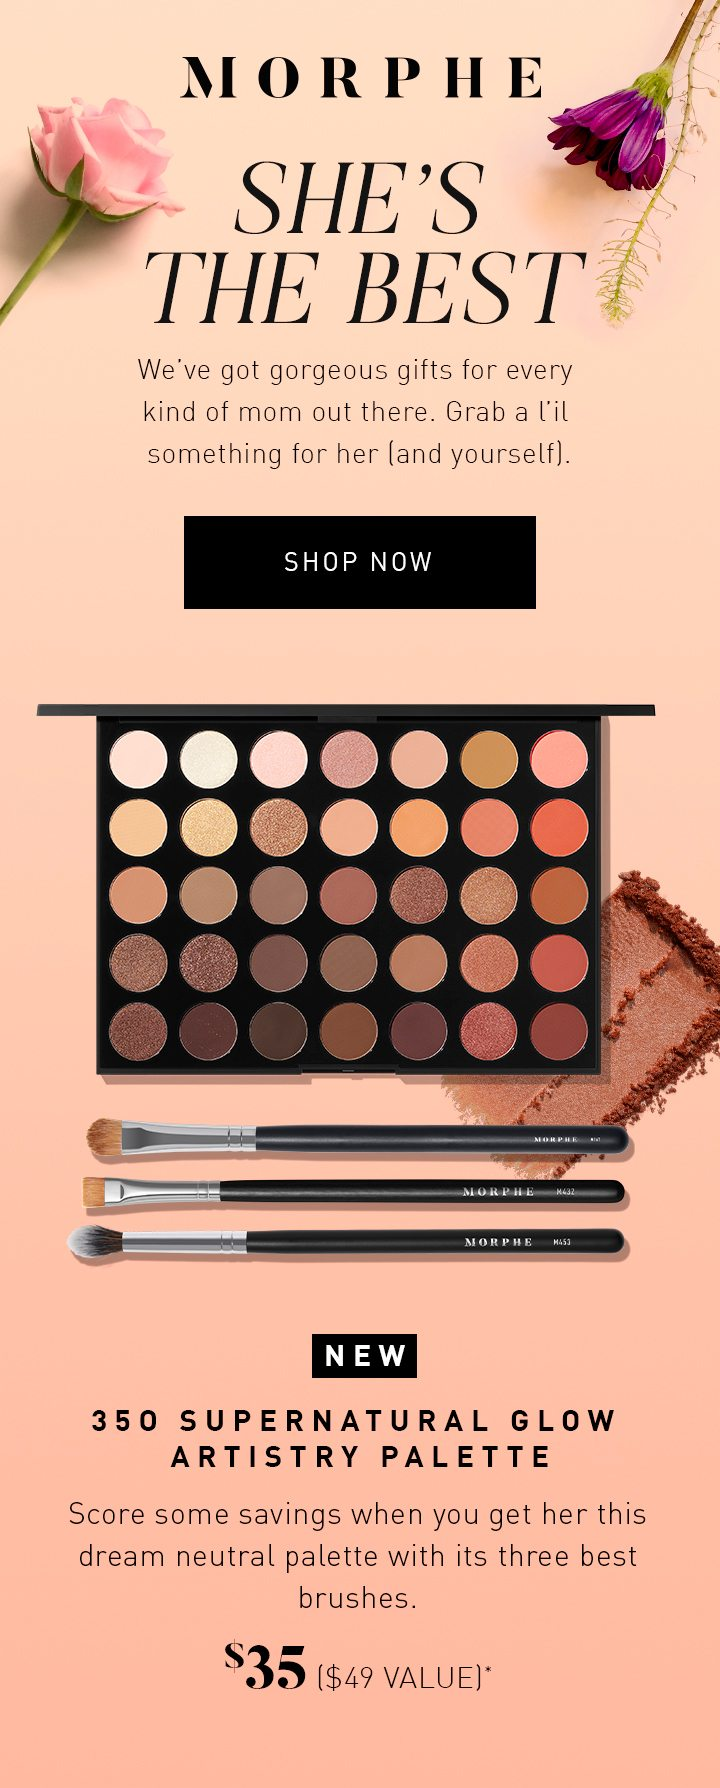 MORPHE SHE'S THE BEST We've got gorgeous gifts for every kind of mom out there. Grab a l'il something for her (and yourself). NEW 35O SUPERNATURAL GLOW ARTISTRY PALETTE Score some savings when you get her this dream neutral palette with its three best brushes. $35 ($49 VALUE)*